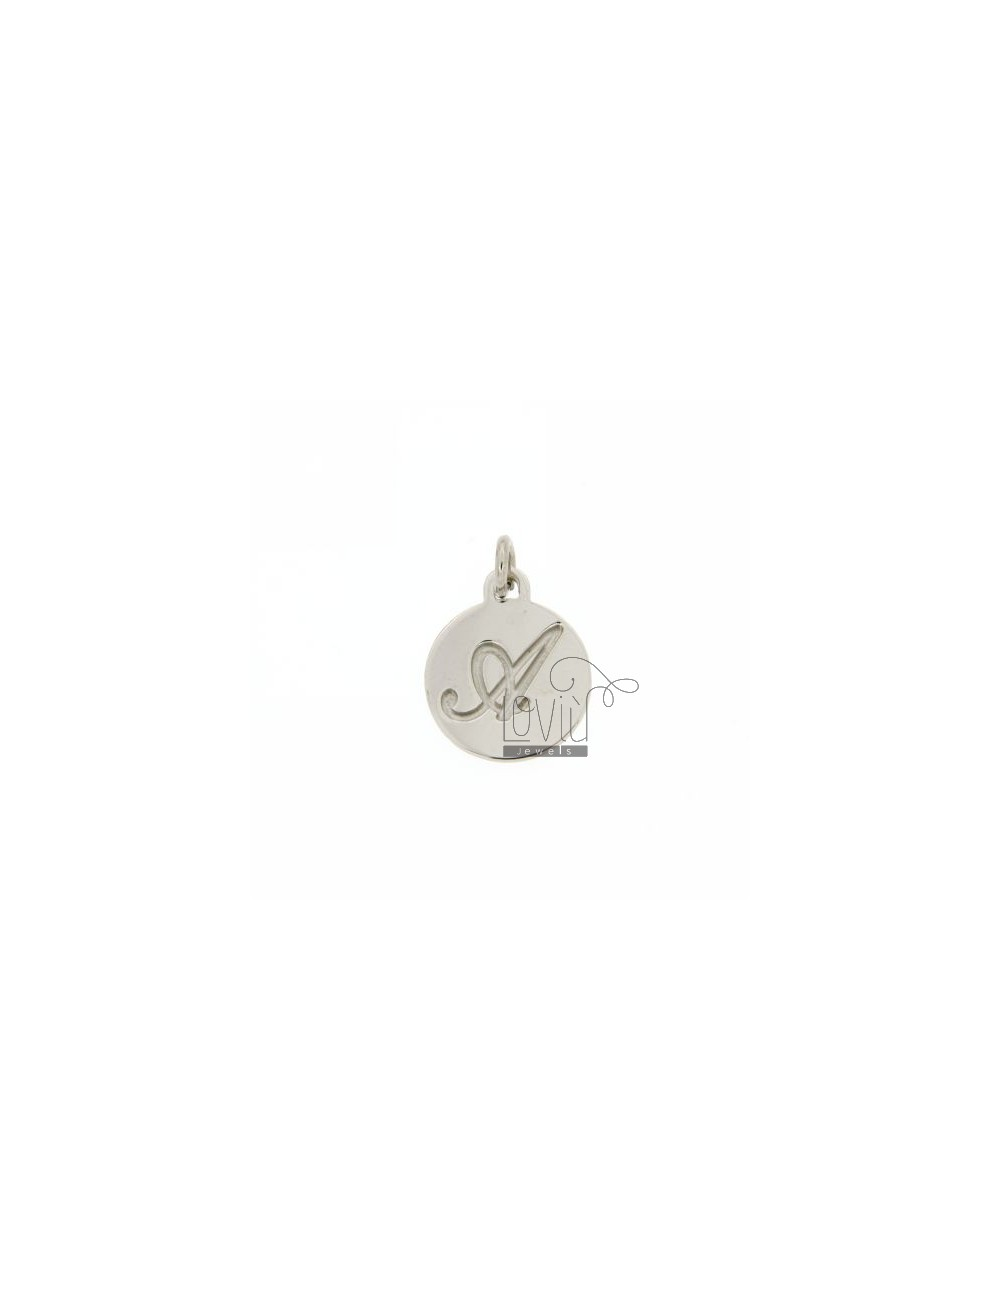 CHARM ROUND 15 MM WITH LETTER TO ENGRAVED IN AG TIT 925 ‰ RHODIUM